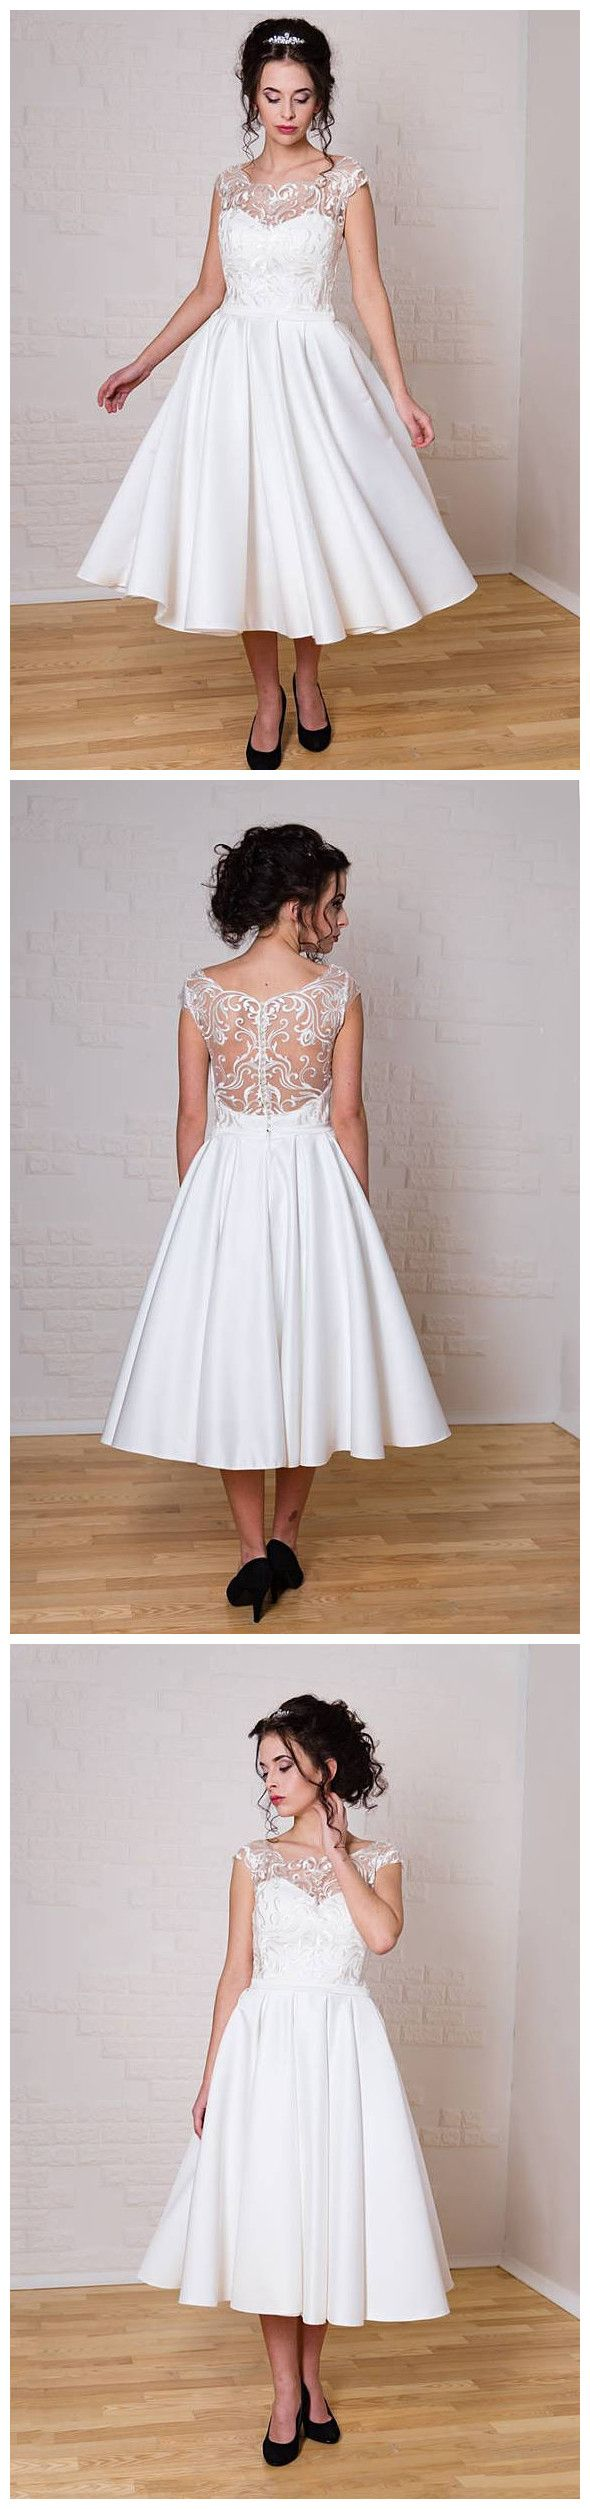 wedding dresses vintage,modest wedding dresses,wedding dresses a line,unique wedding dresses,wedding dresses tea length,wedding dresses cheap,wedding dresses elegant #amyprom #weddingdress #fashion #love #wedding #formal